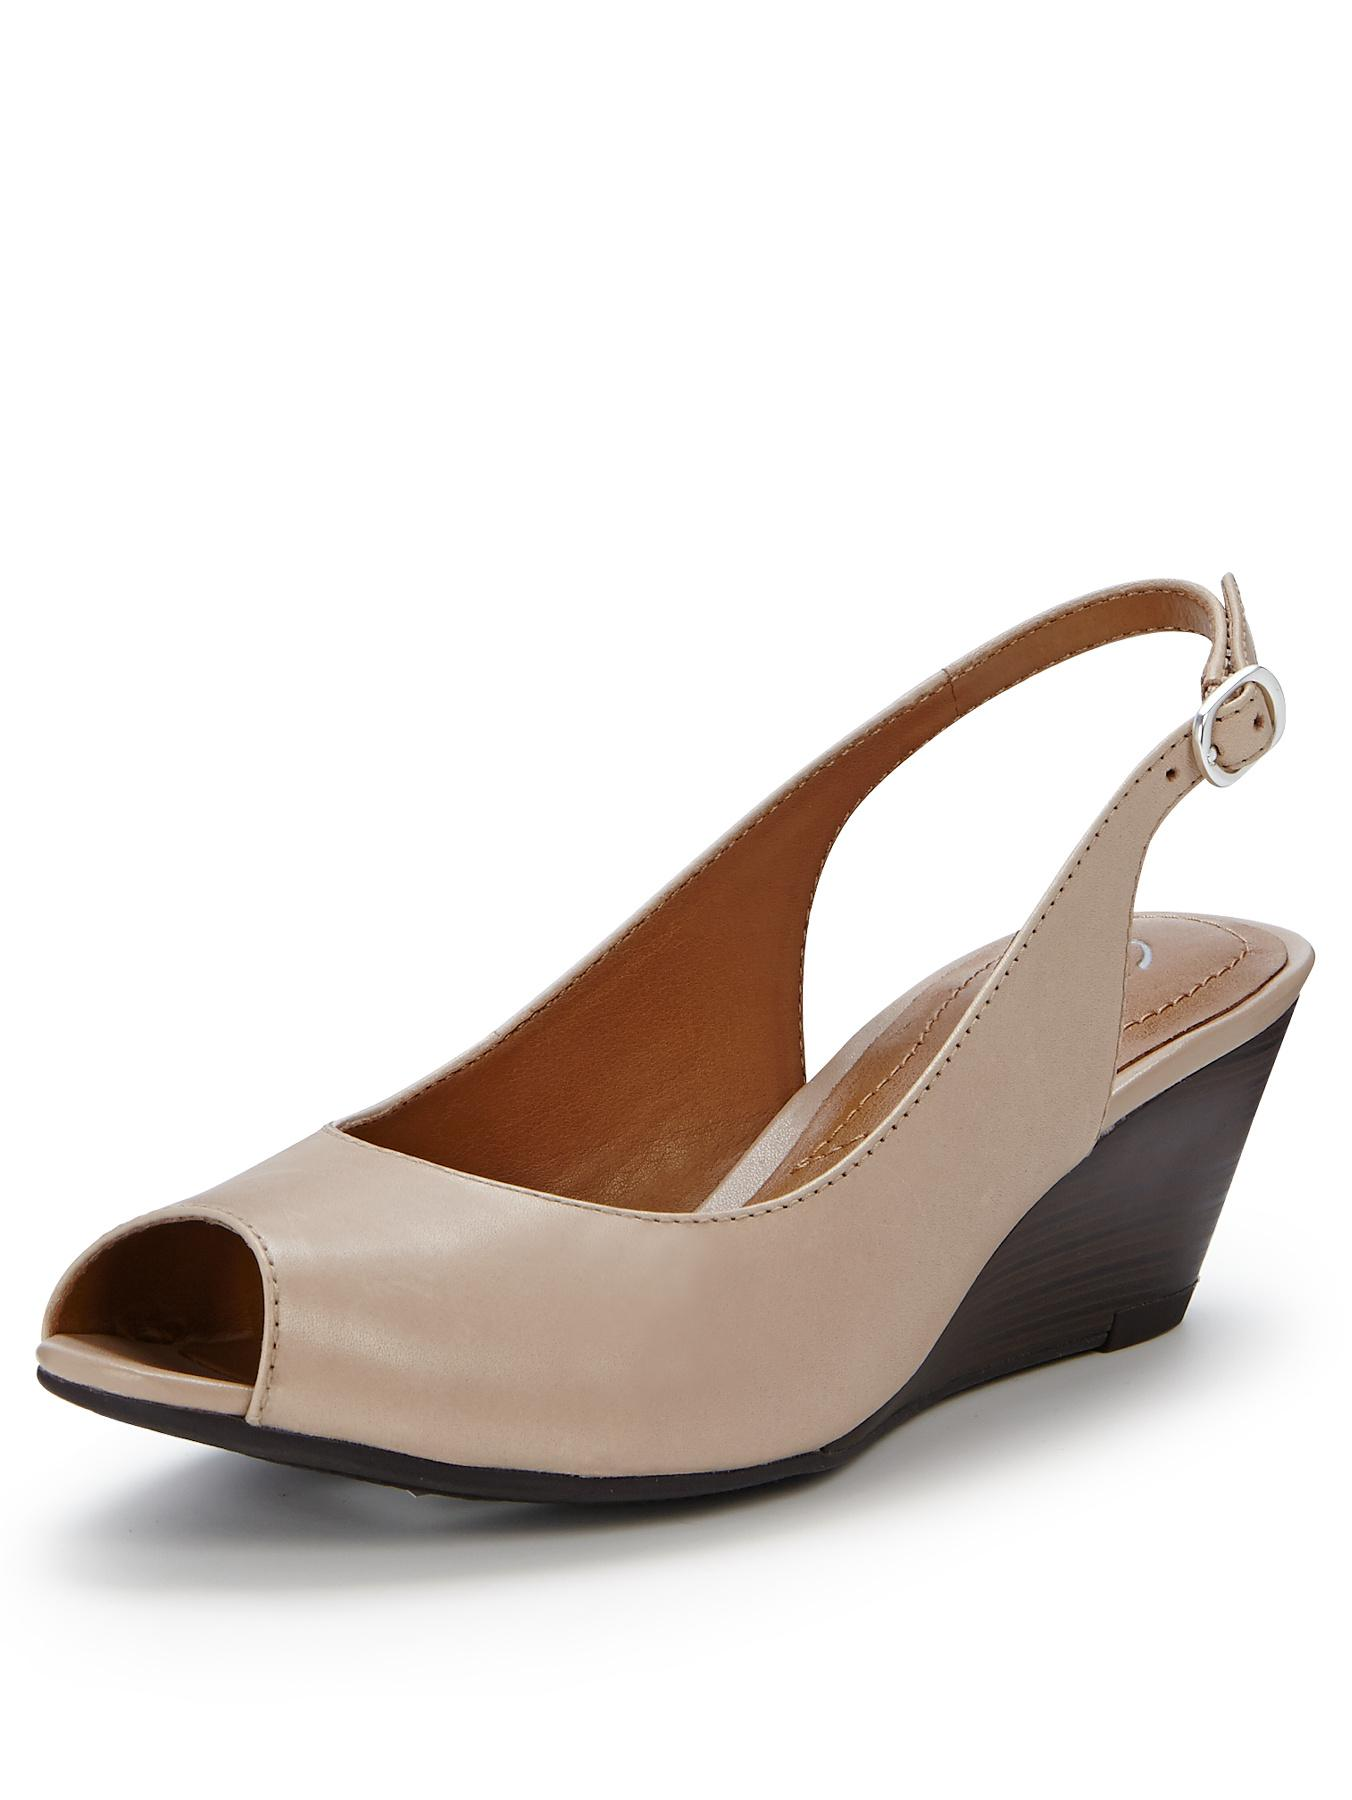 Clarks Brielle April Peep Toe Slingback Wedges - Nude, Nude,Navy